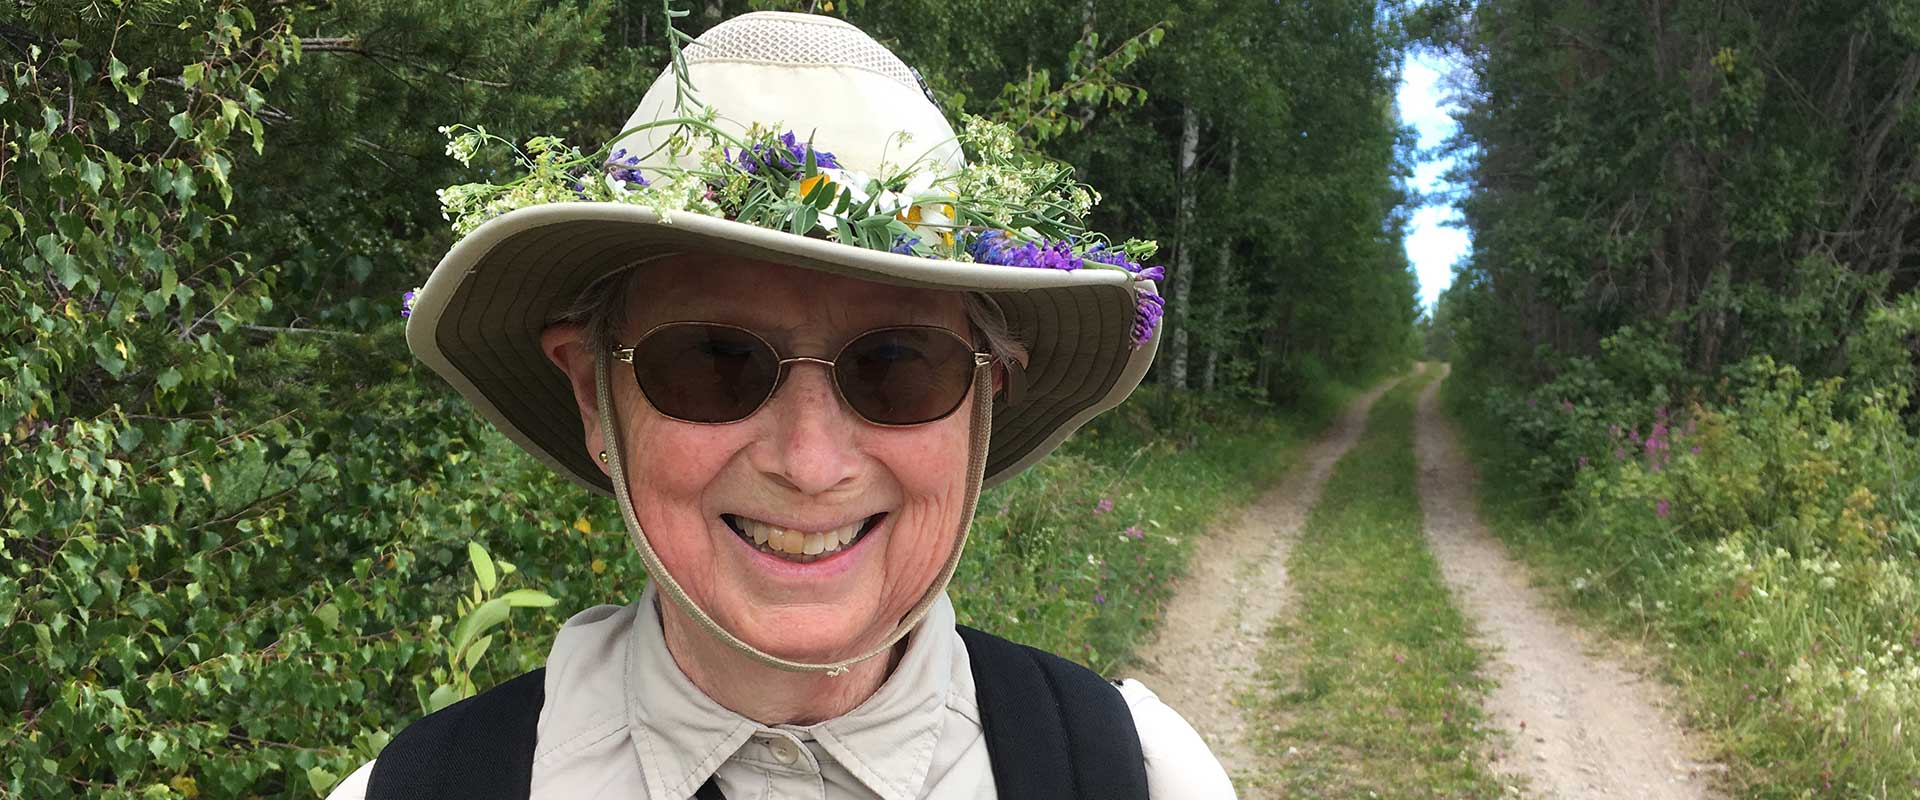 A smiling woman wearing a hat with flowers